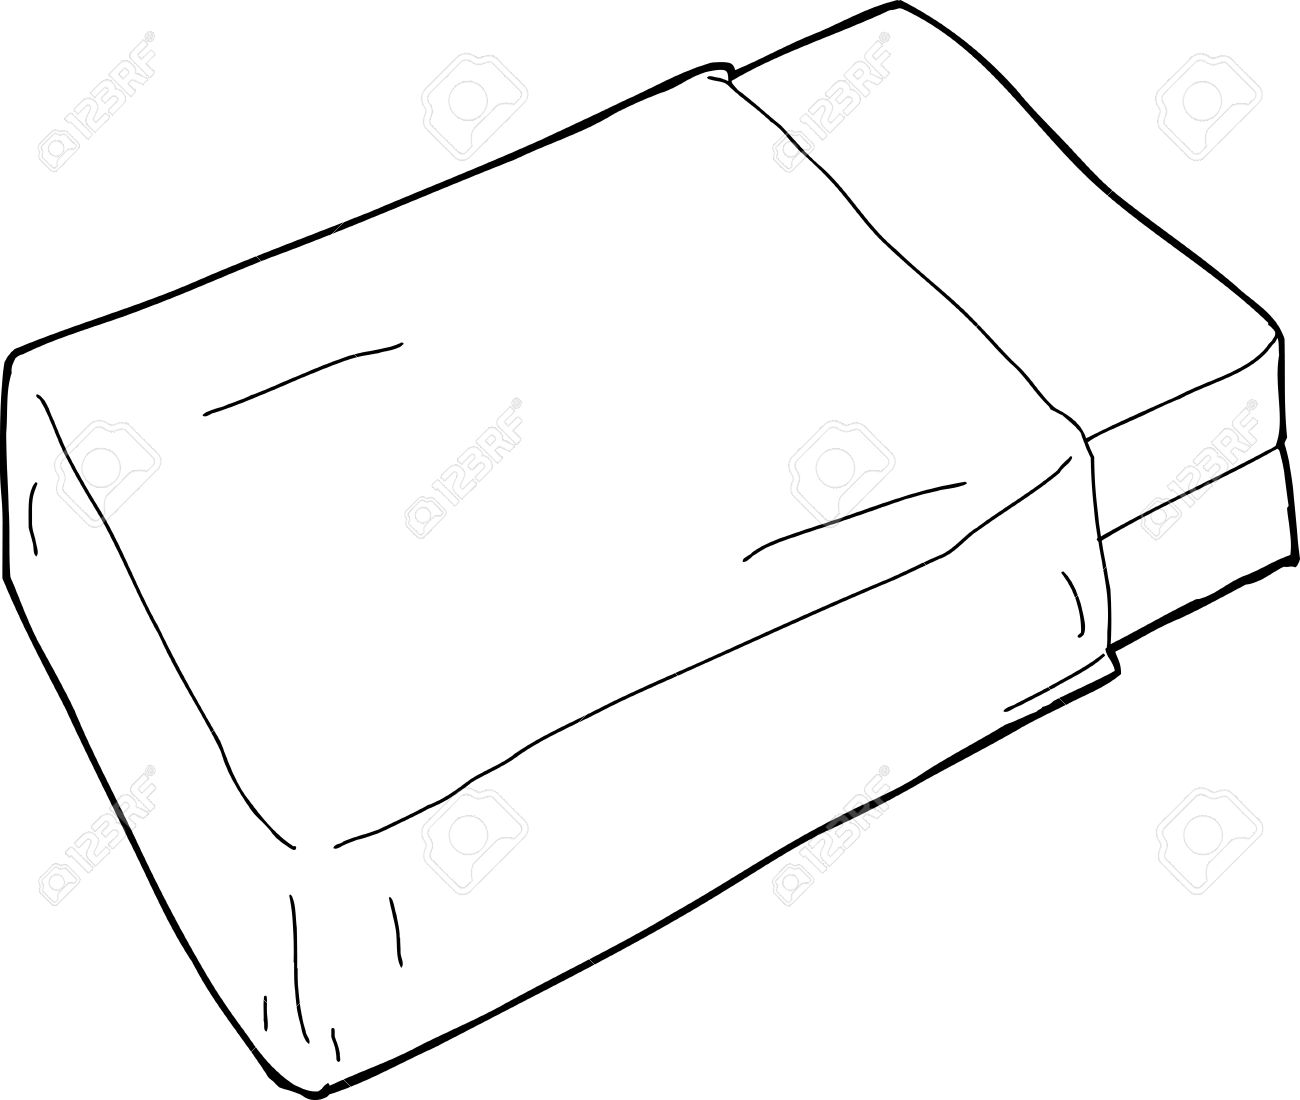 mattress drawing. Single Hand Drawn Bed Mattress With Blanket Stock Vector - 35795340 Drawing 8